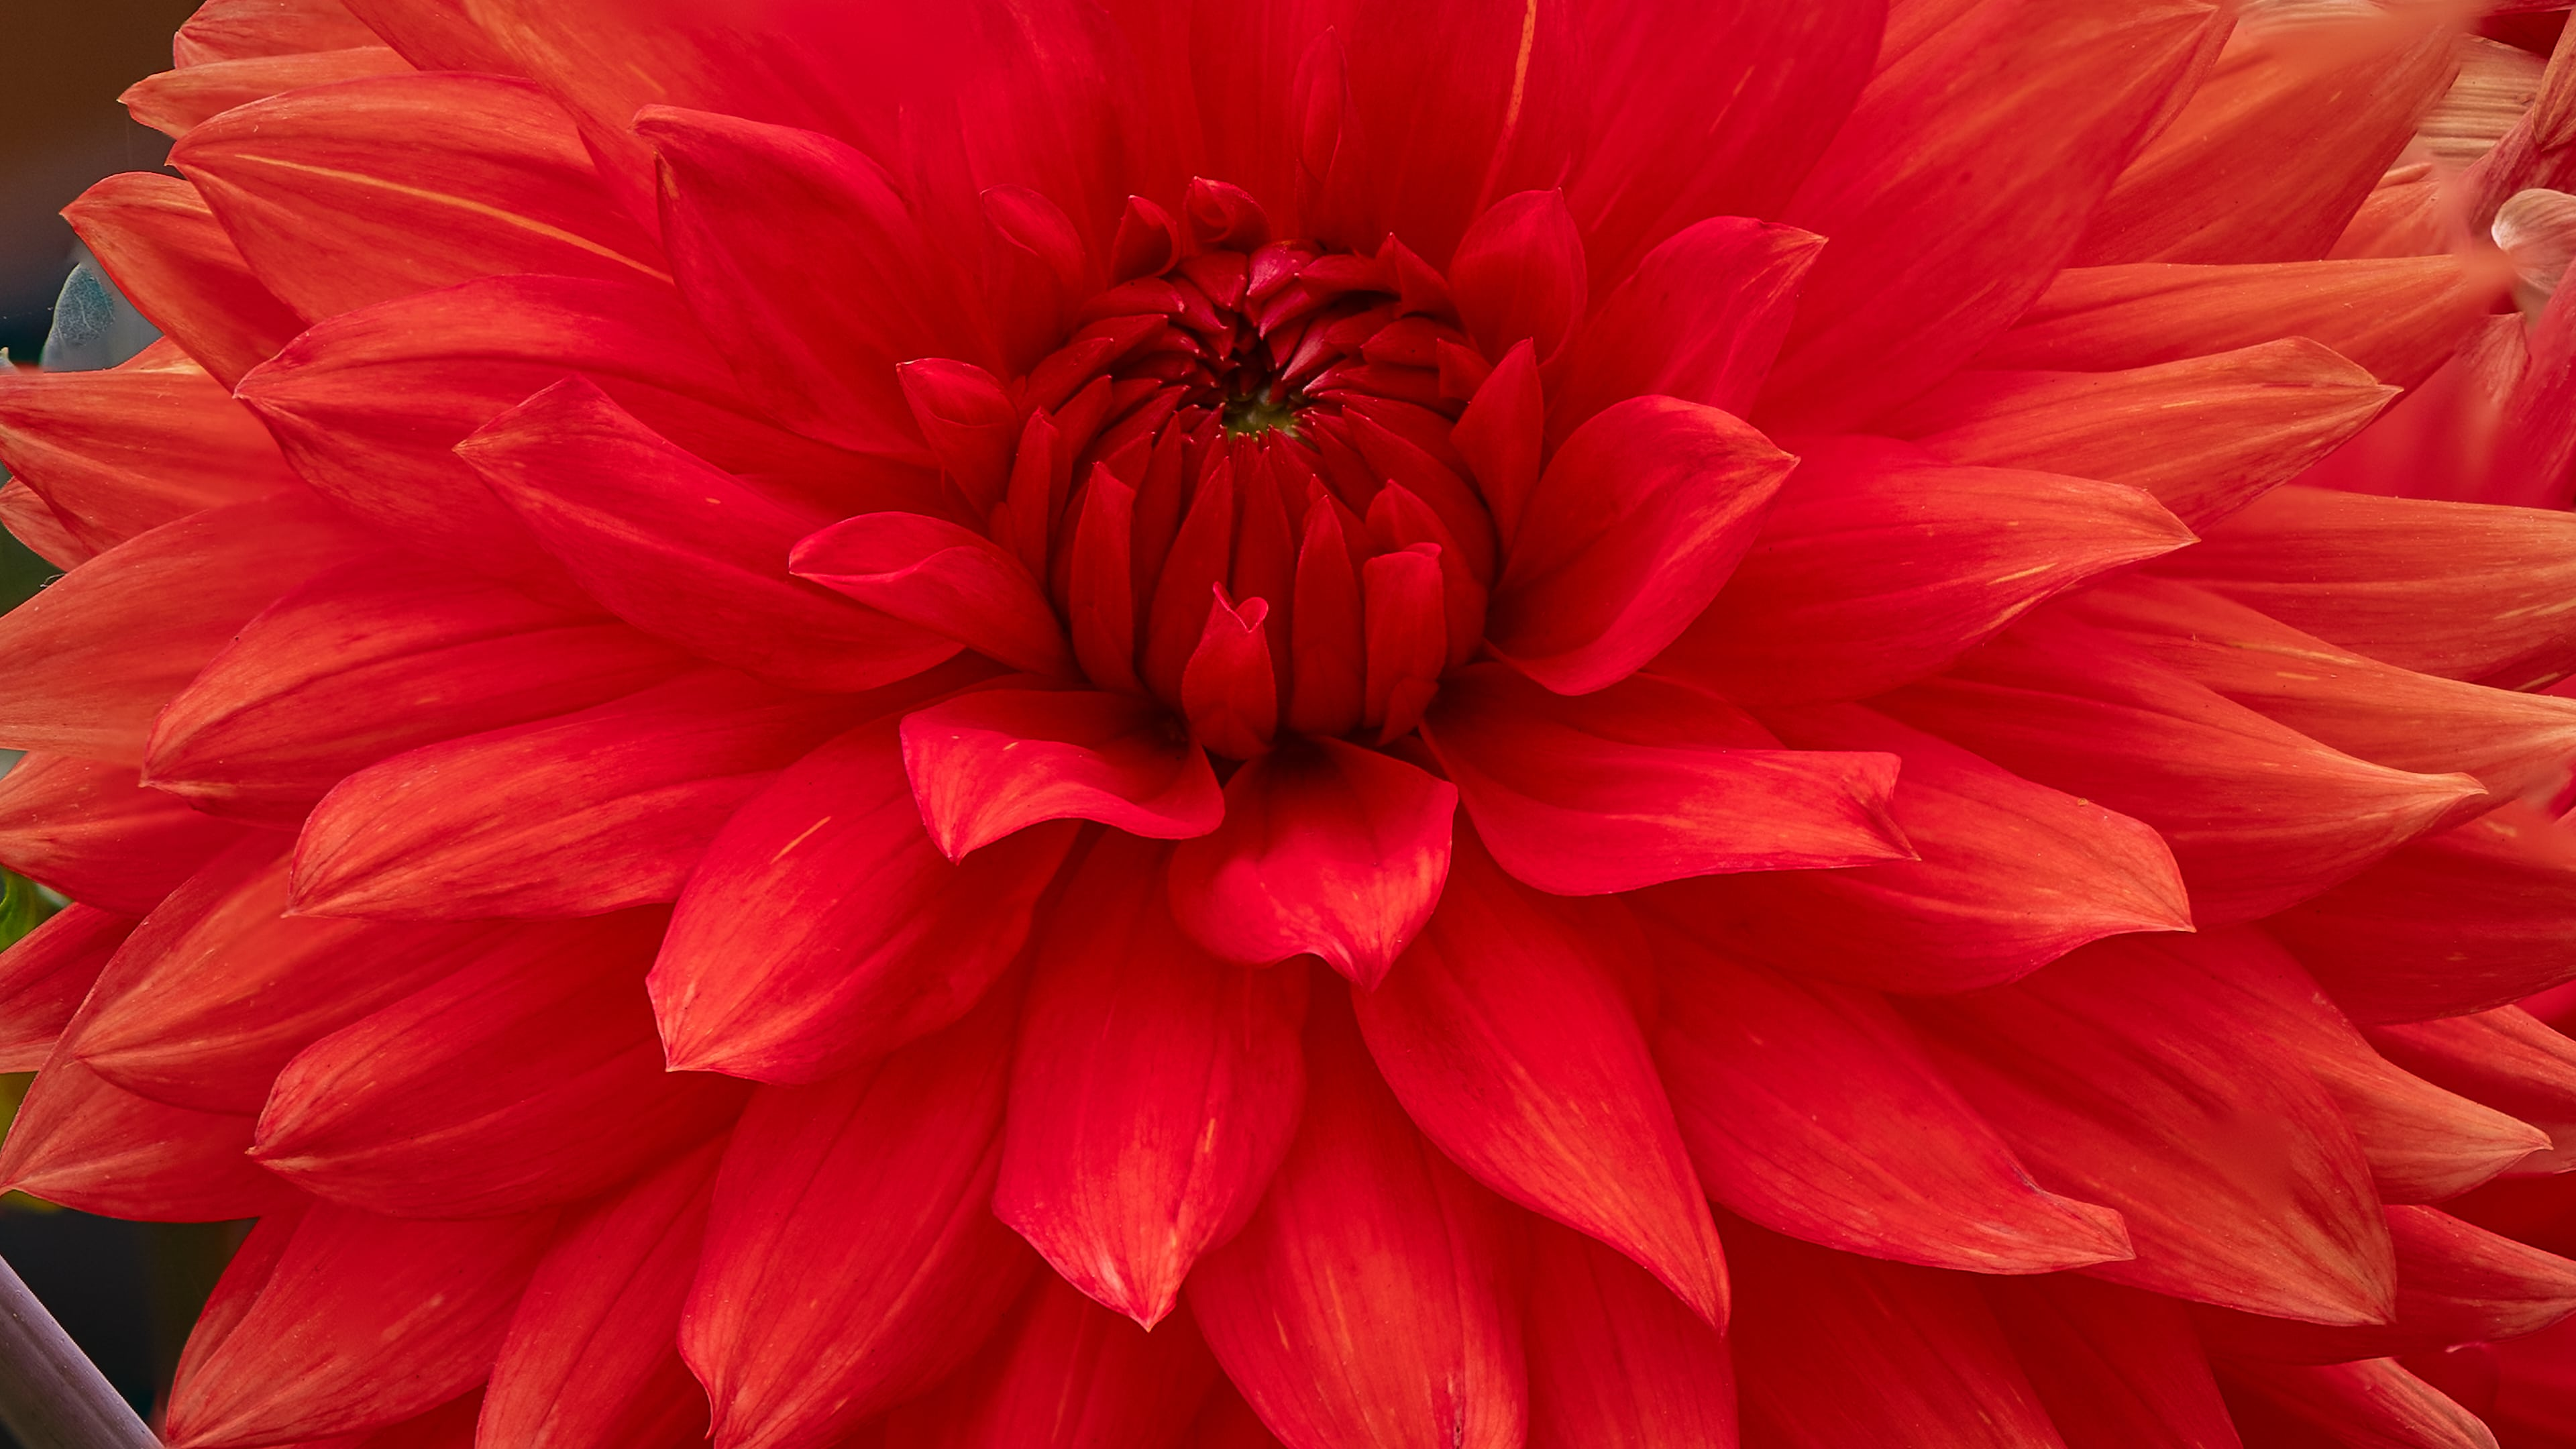 Nikon Z7 Focus Shift - Stacked with Adobe Photoshop - Flower Detail 3